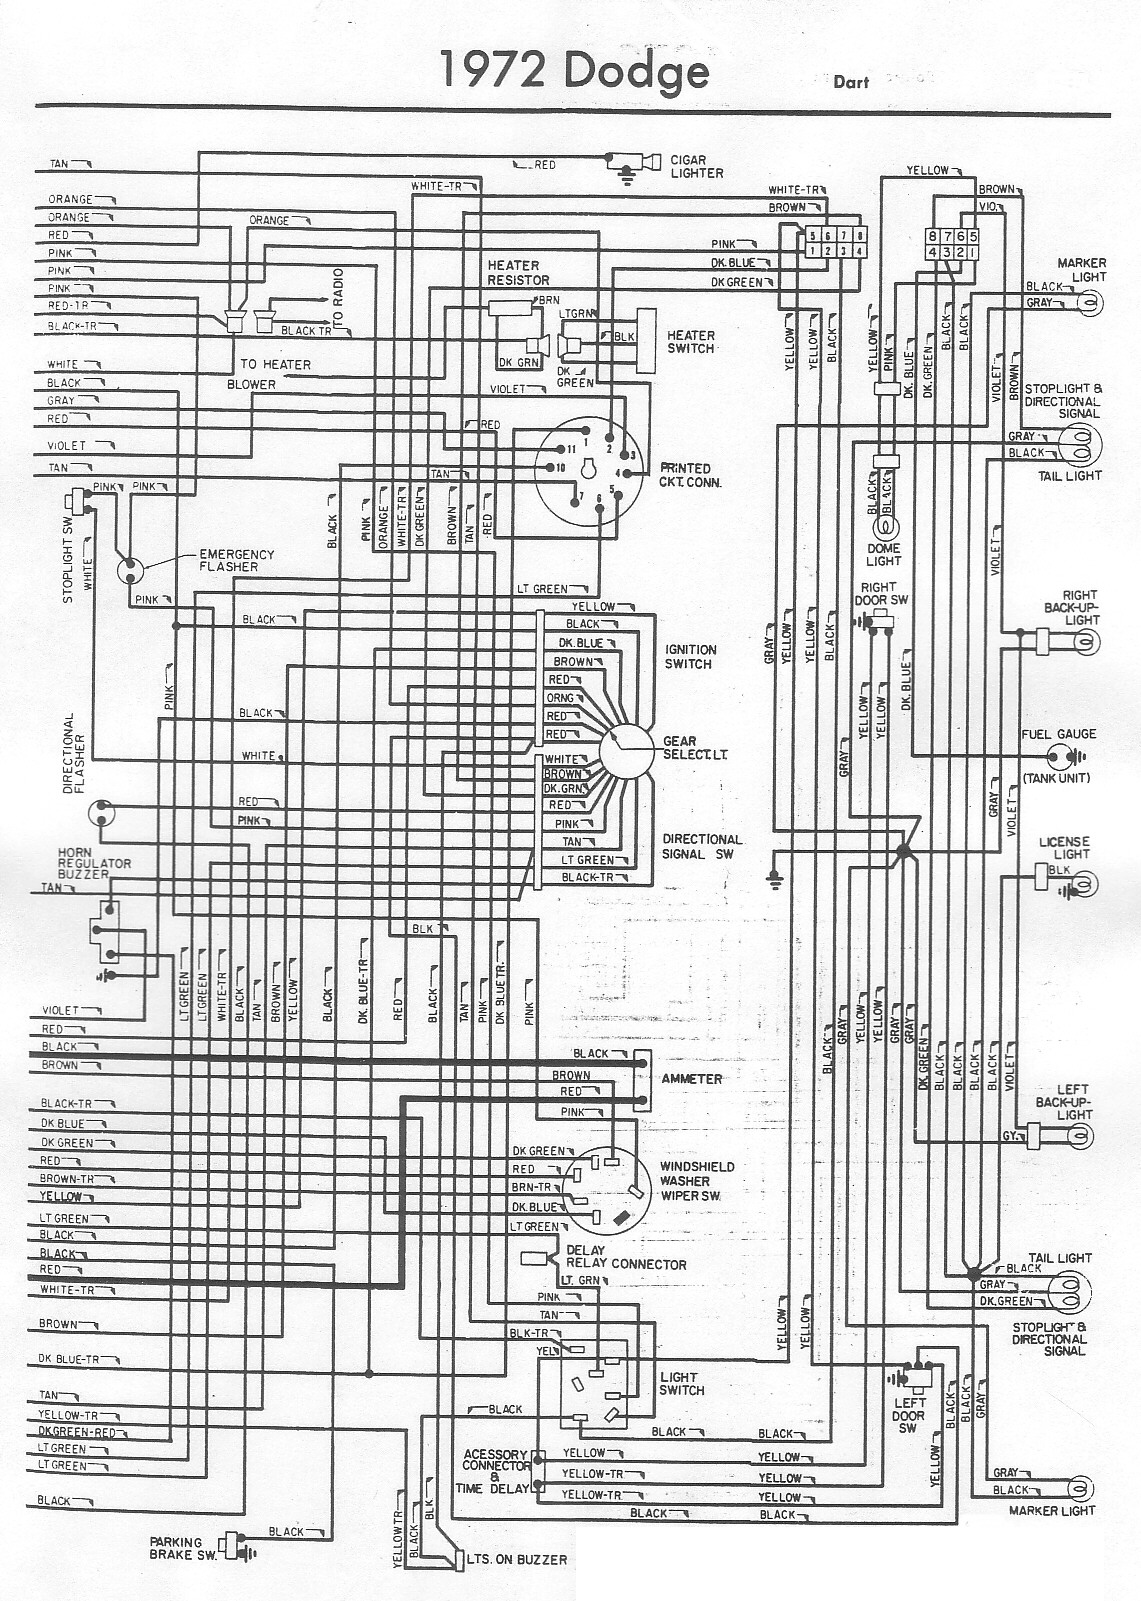 1973 Duster Wiring Diagram Library Plymouth Satellite